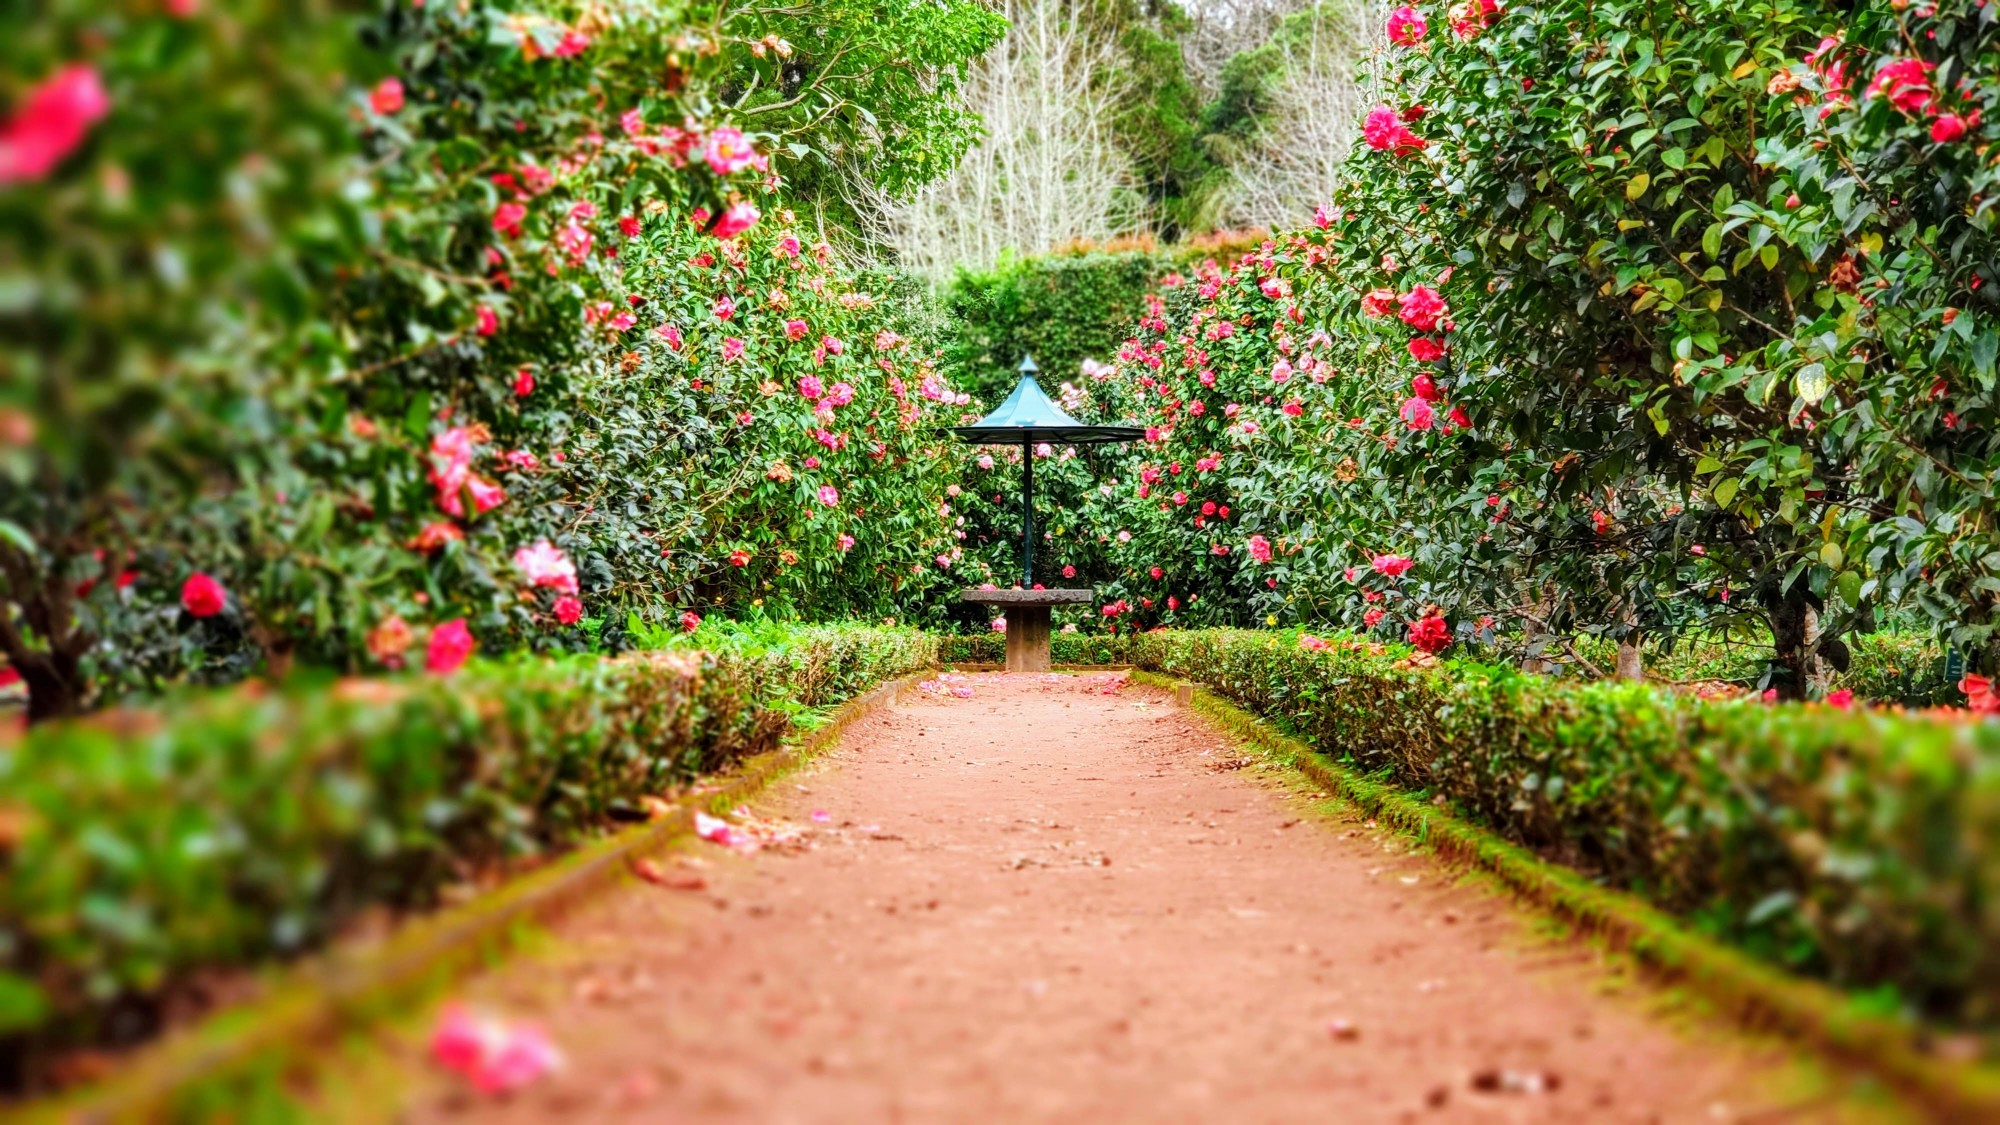 Beautiful and majestic lush green garden with a wide orange red path with vines and matching flowers on each side with a open brown gate at the end.